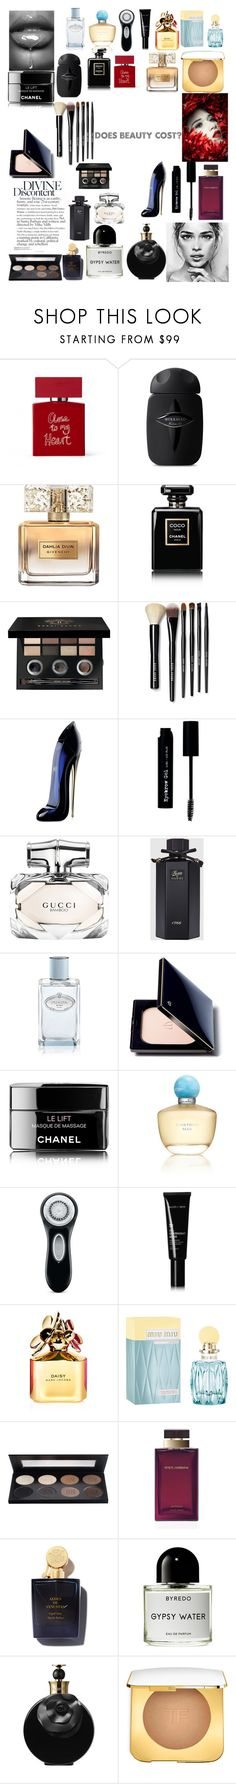 """""""Untitled #809"""" by rachelformsbeauty ❤ liked on Polyvore featuring beauty, Bella Freud, Givenchy, Chanel, Bobbi Brown Cosmetics, Carolina Herrera, The BrowGal, Gucci, Prada and Clé de Peau Beauté"""